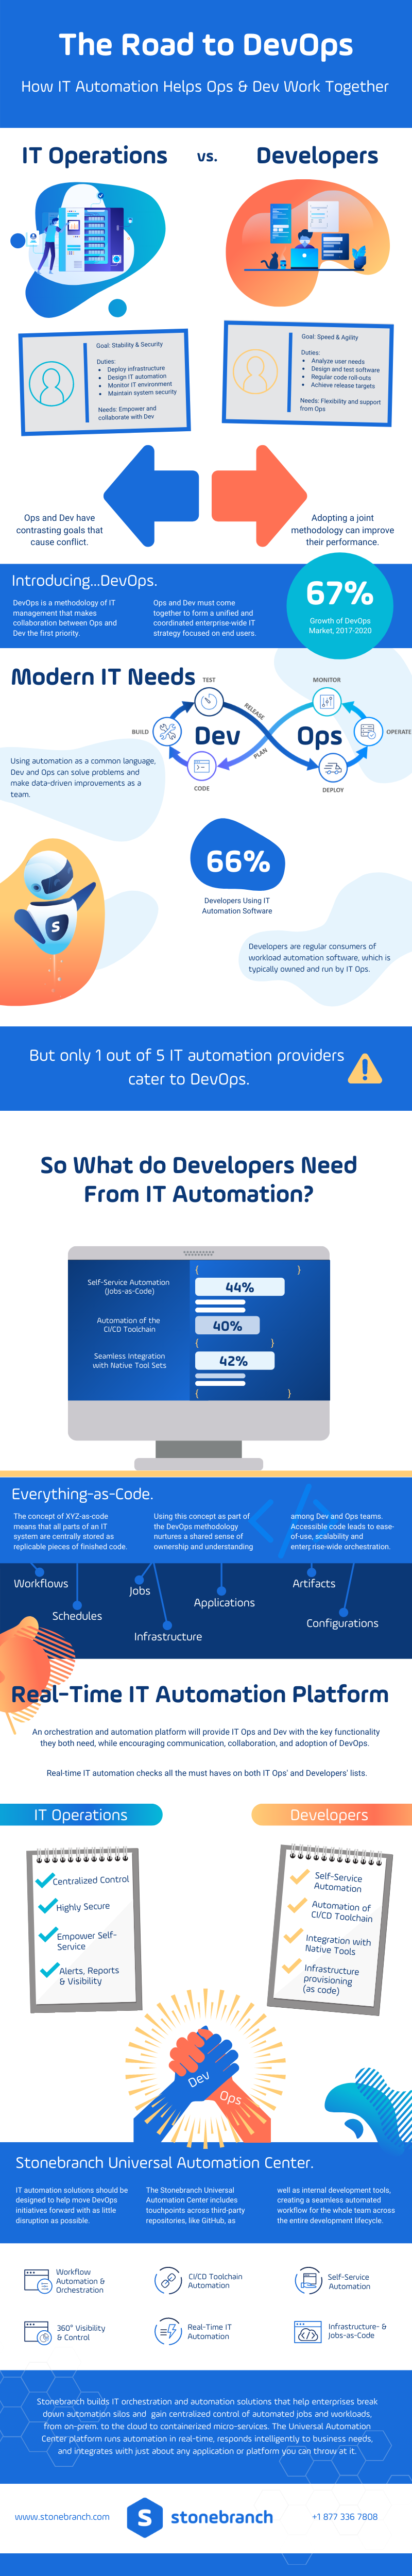 road to devops infographic it ops developers